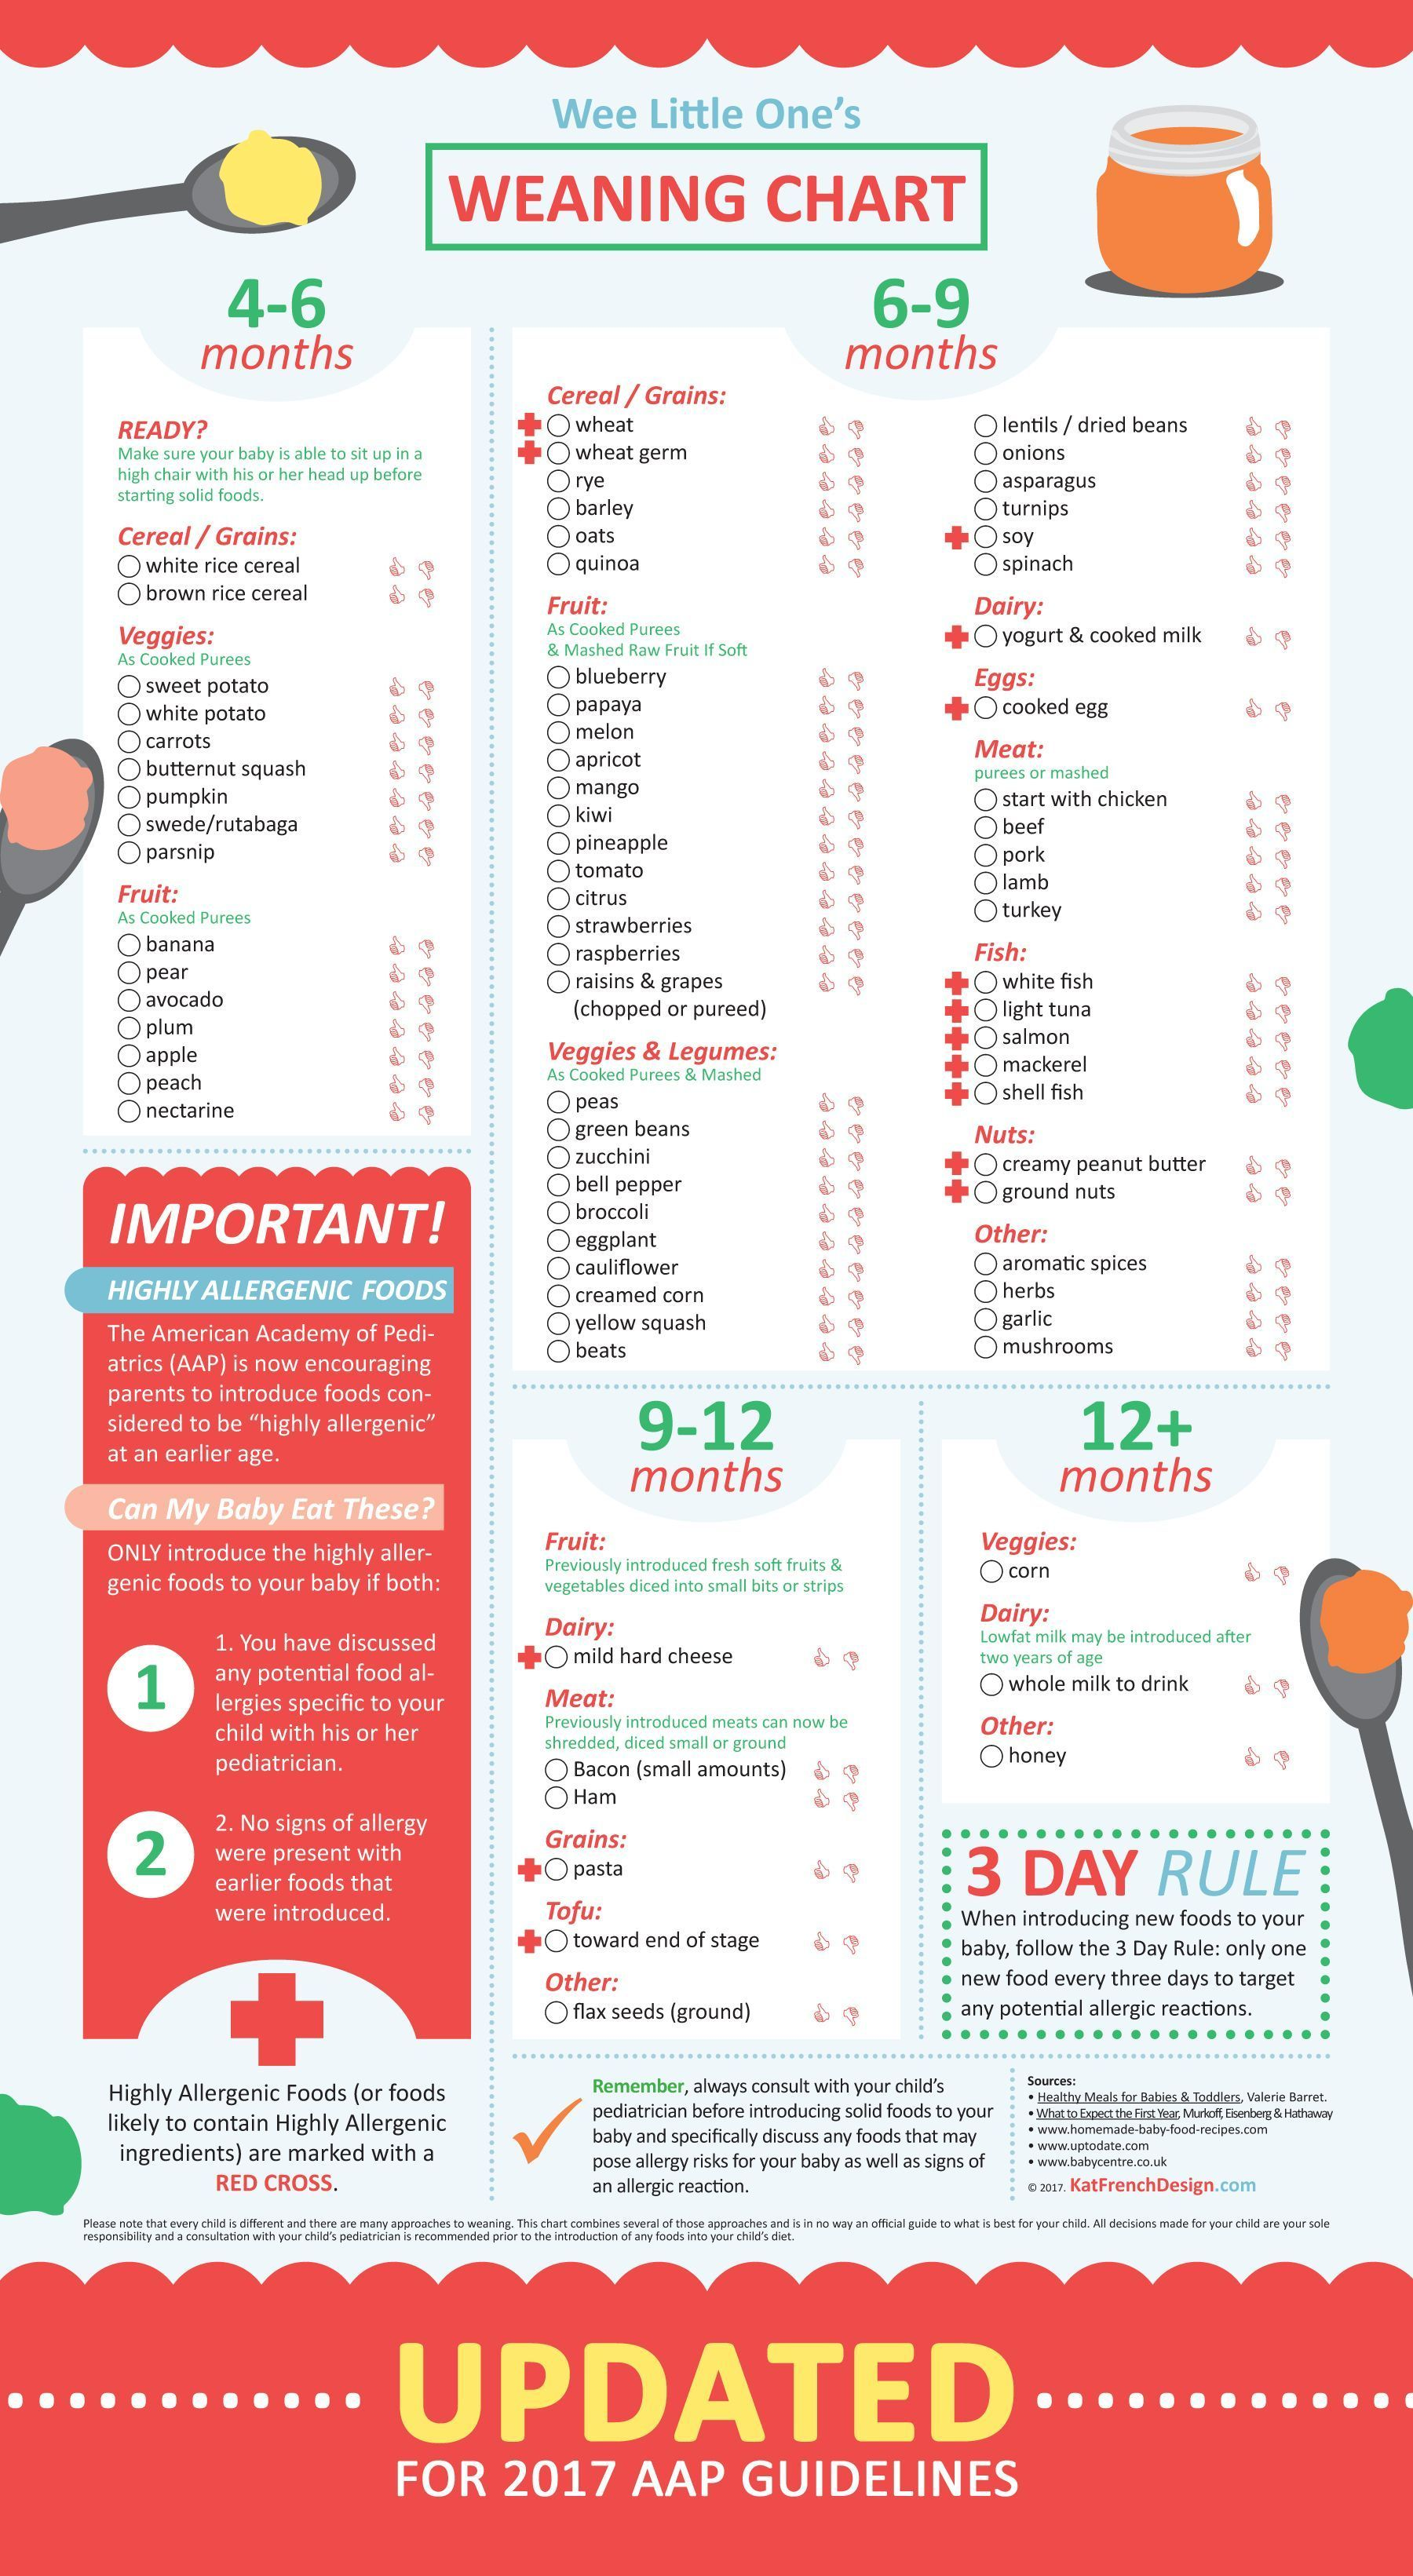 Baby weaning chart updated 2017 high allergy foods weaning chart